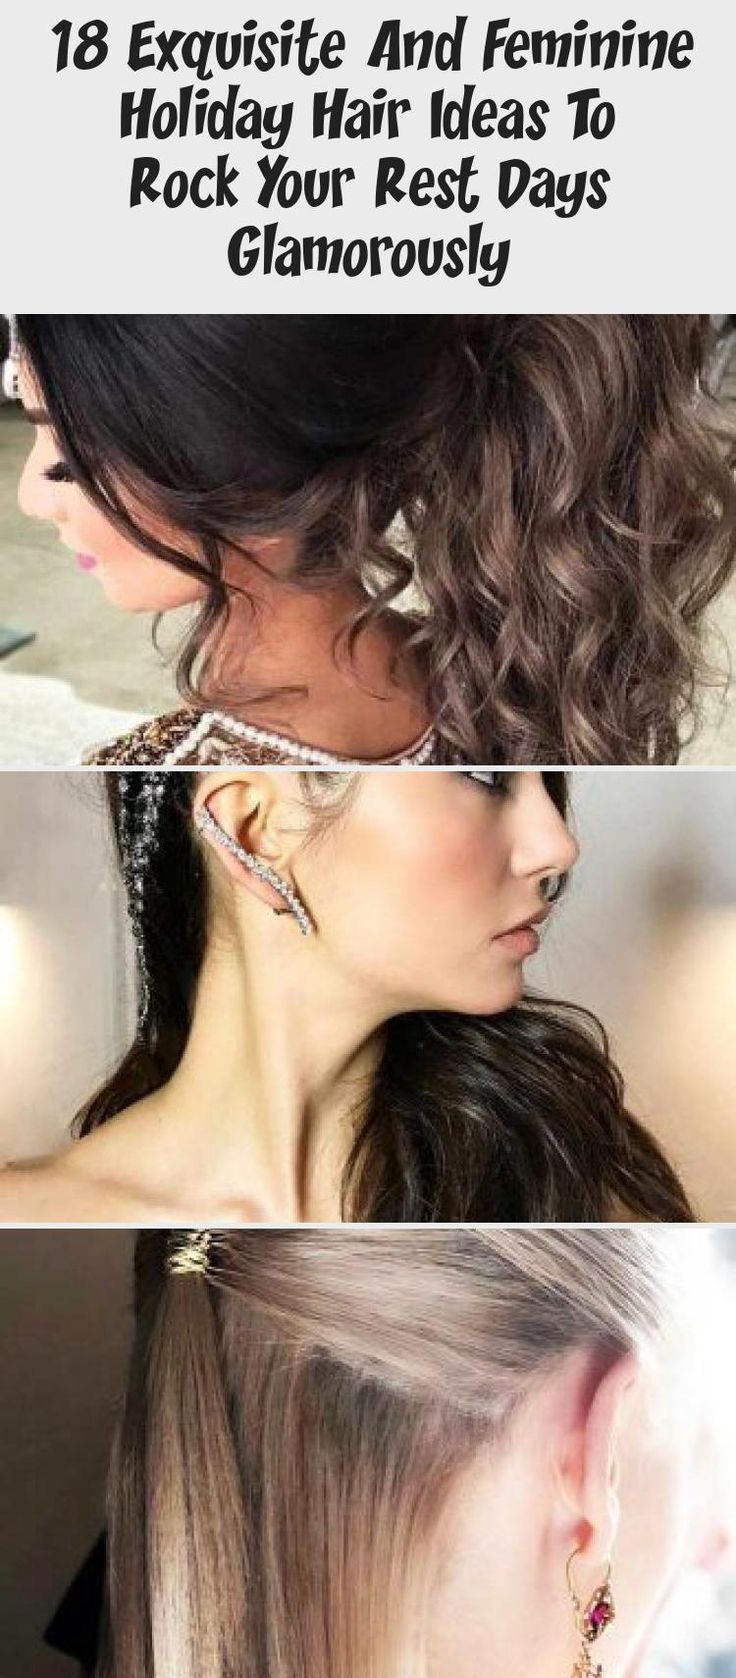 18 Exquisite And Feminine Holiday Hair Ideas To Rock Your Rest Days Glamorously